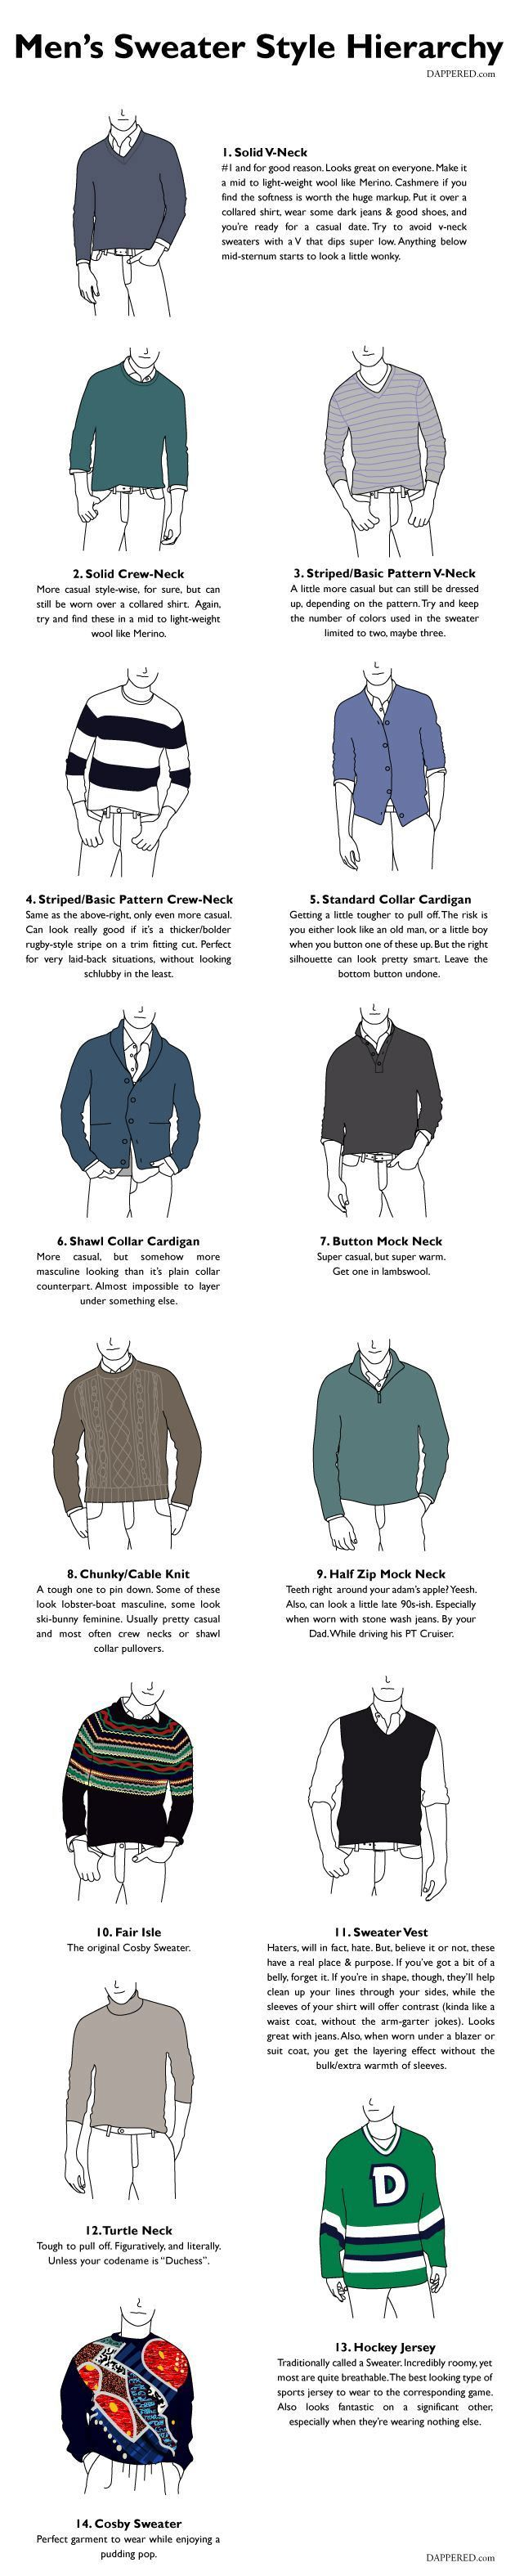 types of sweaters for men, men's sweaters styles to wear this fall